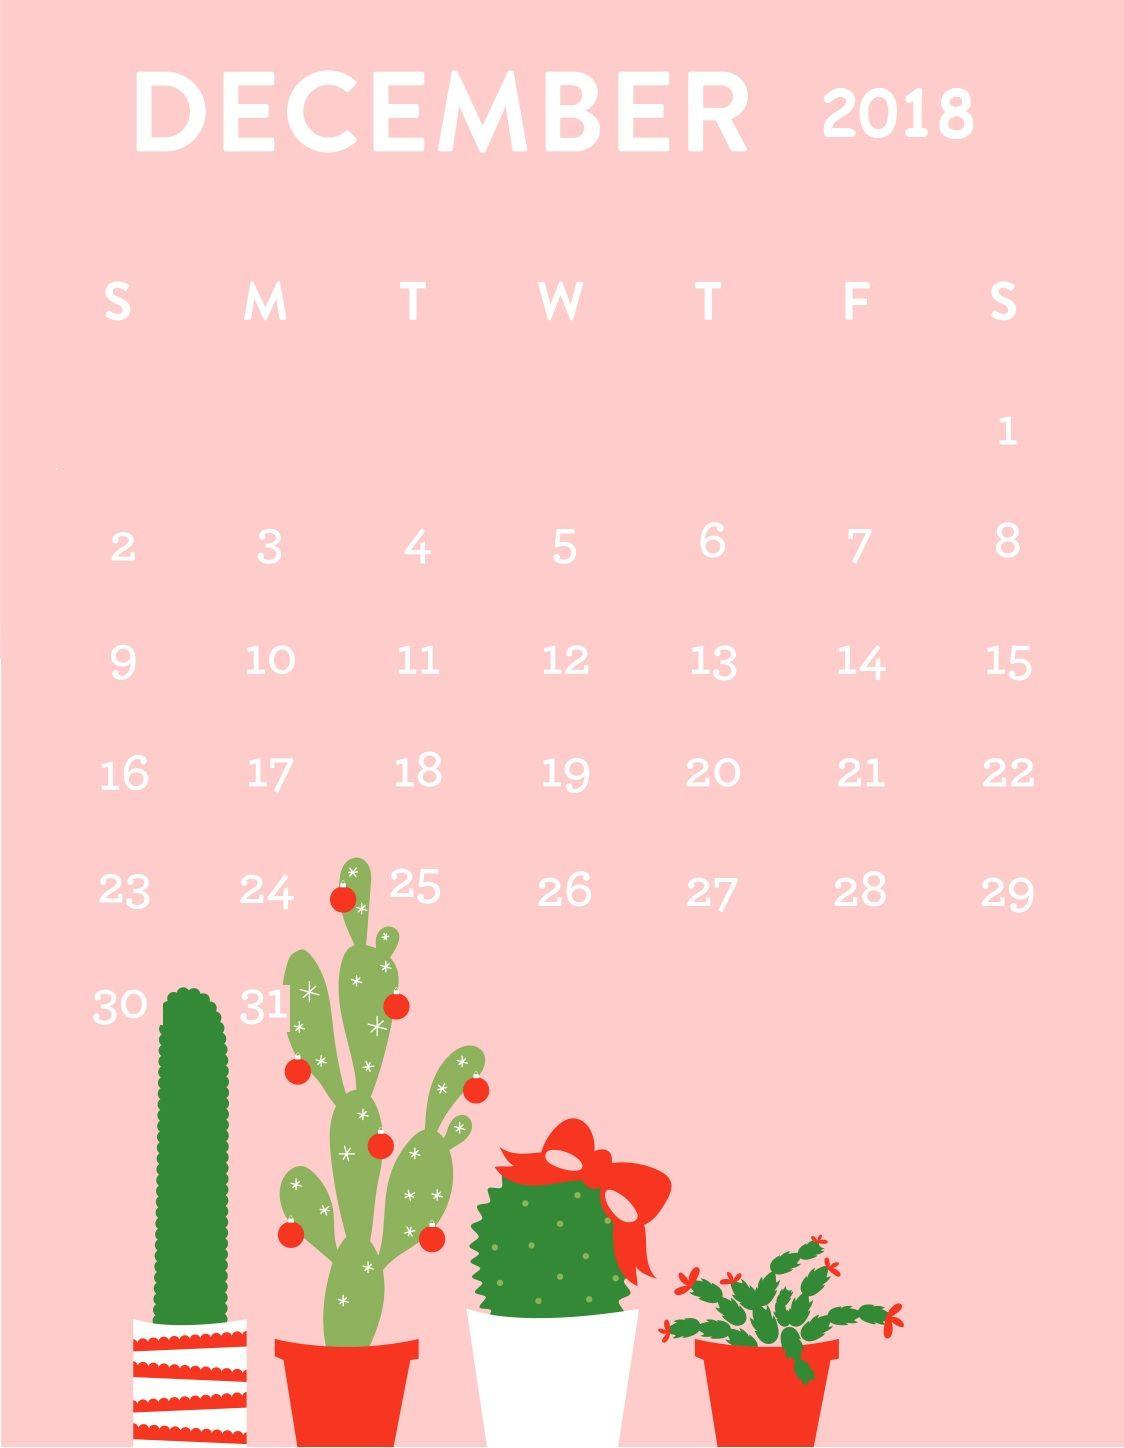 December 2019 Calendar Laptop Wallpaper December 2018 Calendar Wallpapers   Wallpaper Cave